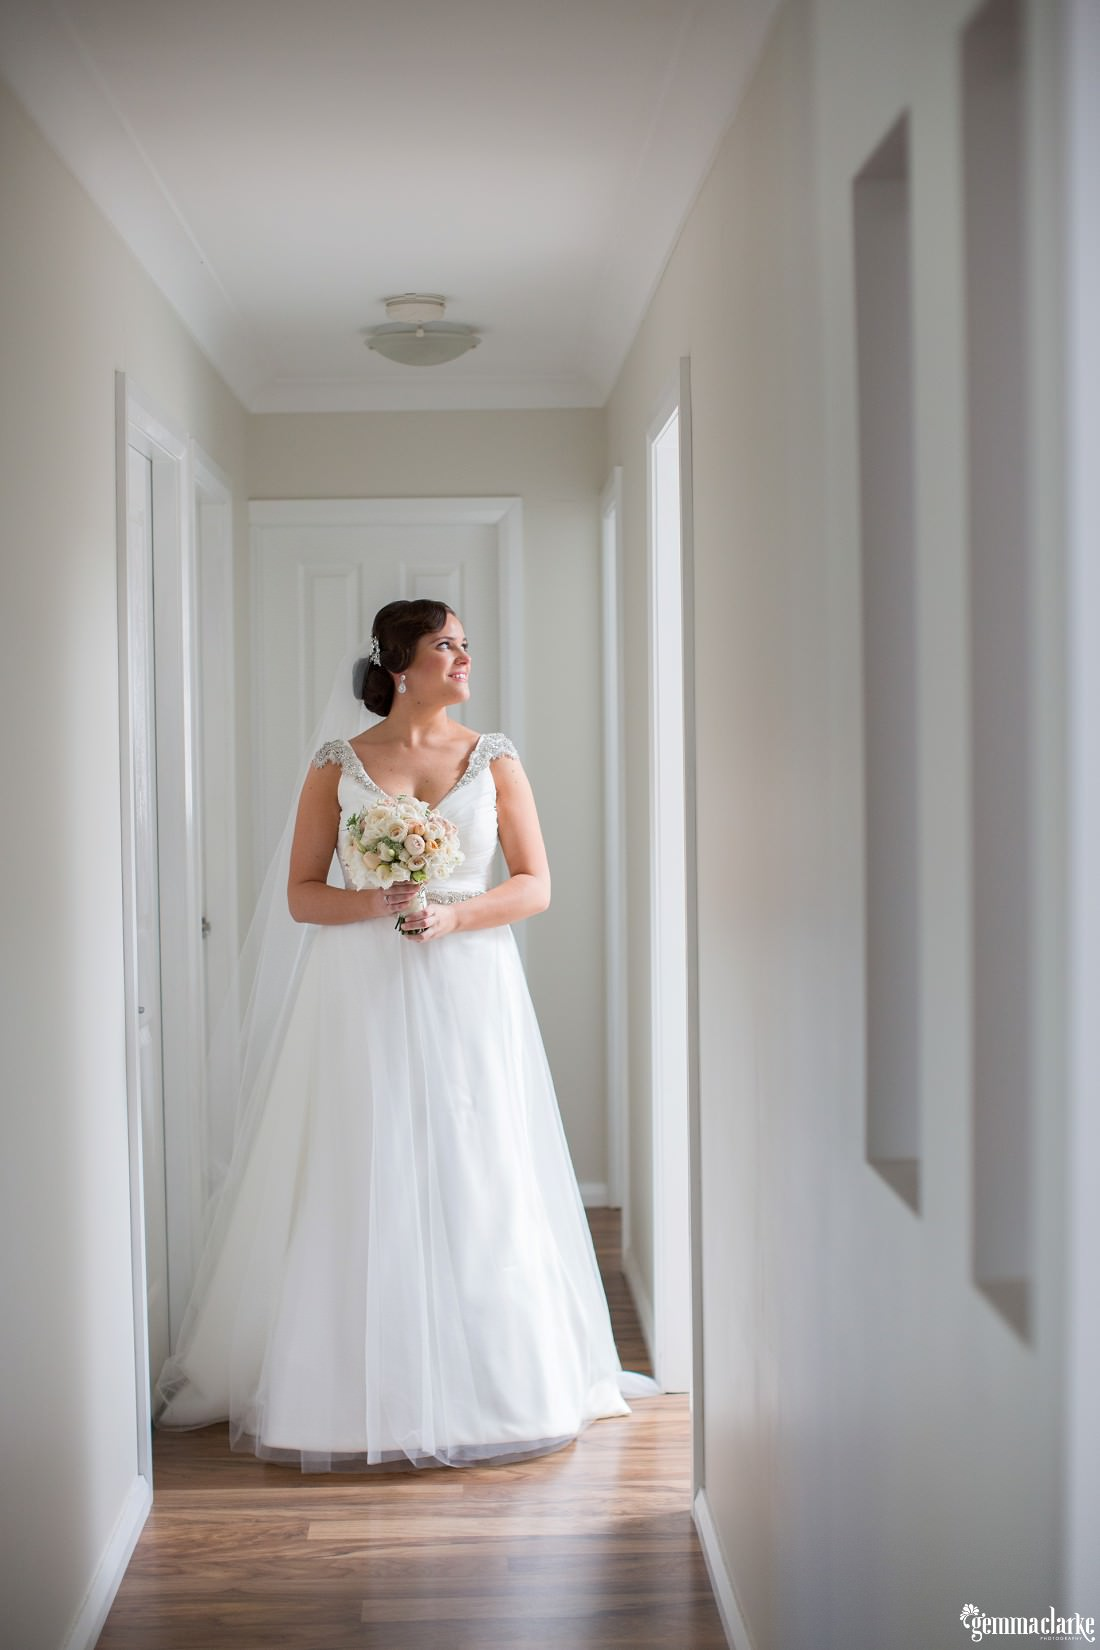 A bride standing in a hallway with light shining on her through a doorway - Western Sydney Wedding